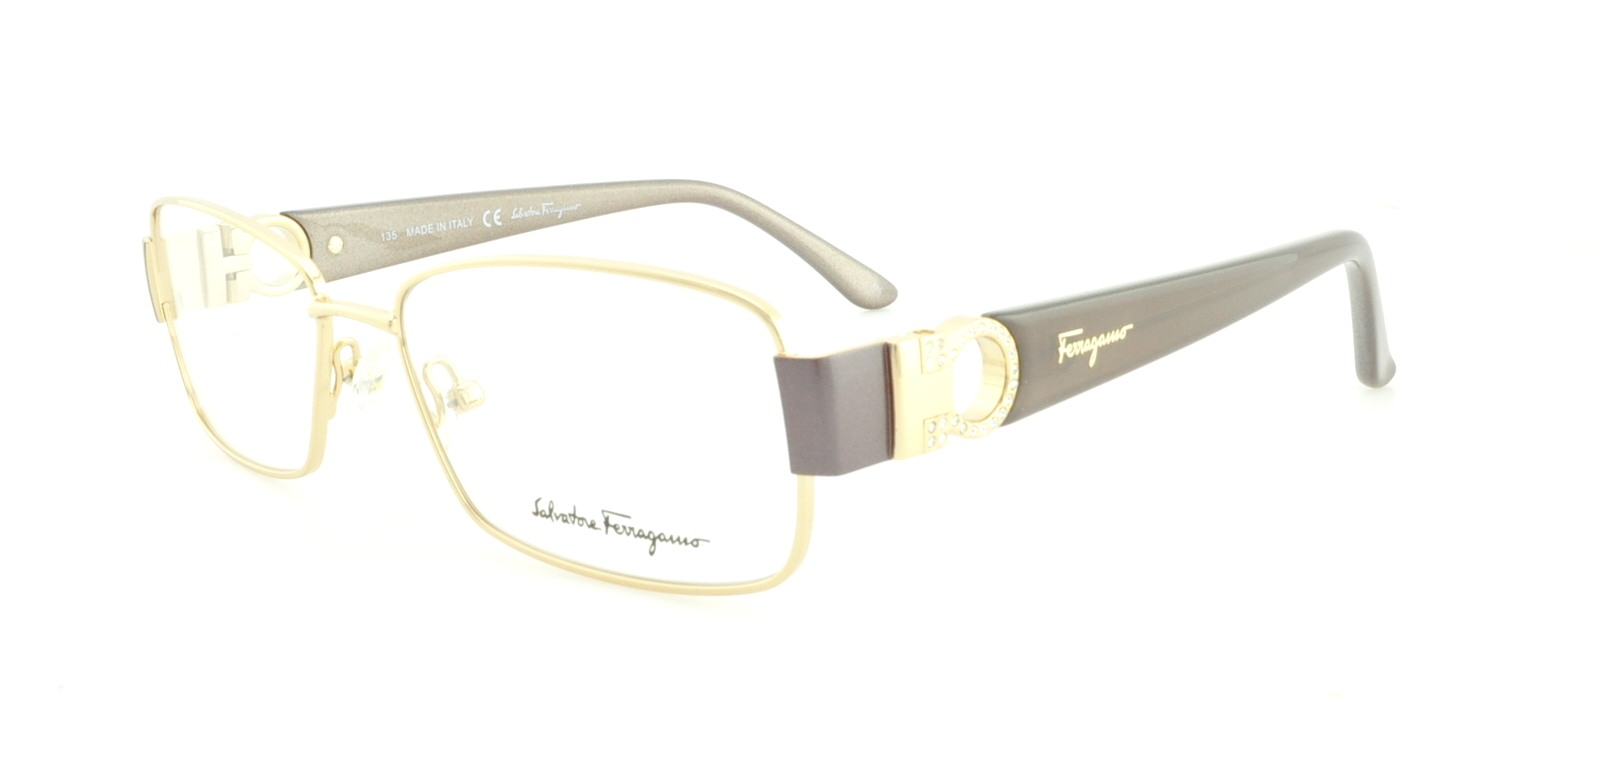 SALVATORE FERRAGAMO Eyeglasses SF2124R 717 Shiny Gold 52MM - Walmart.com